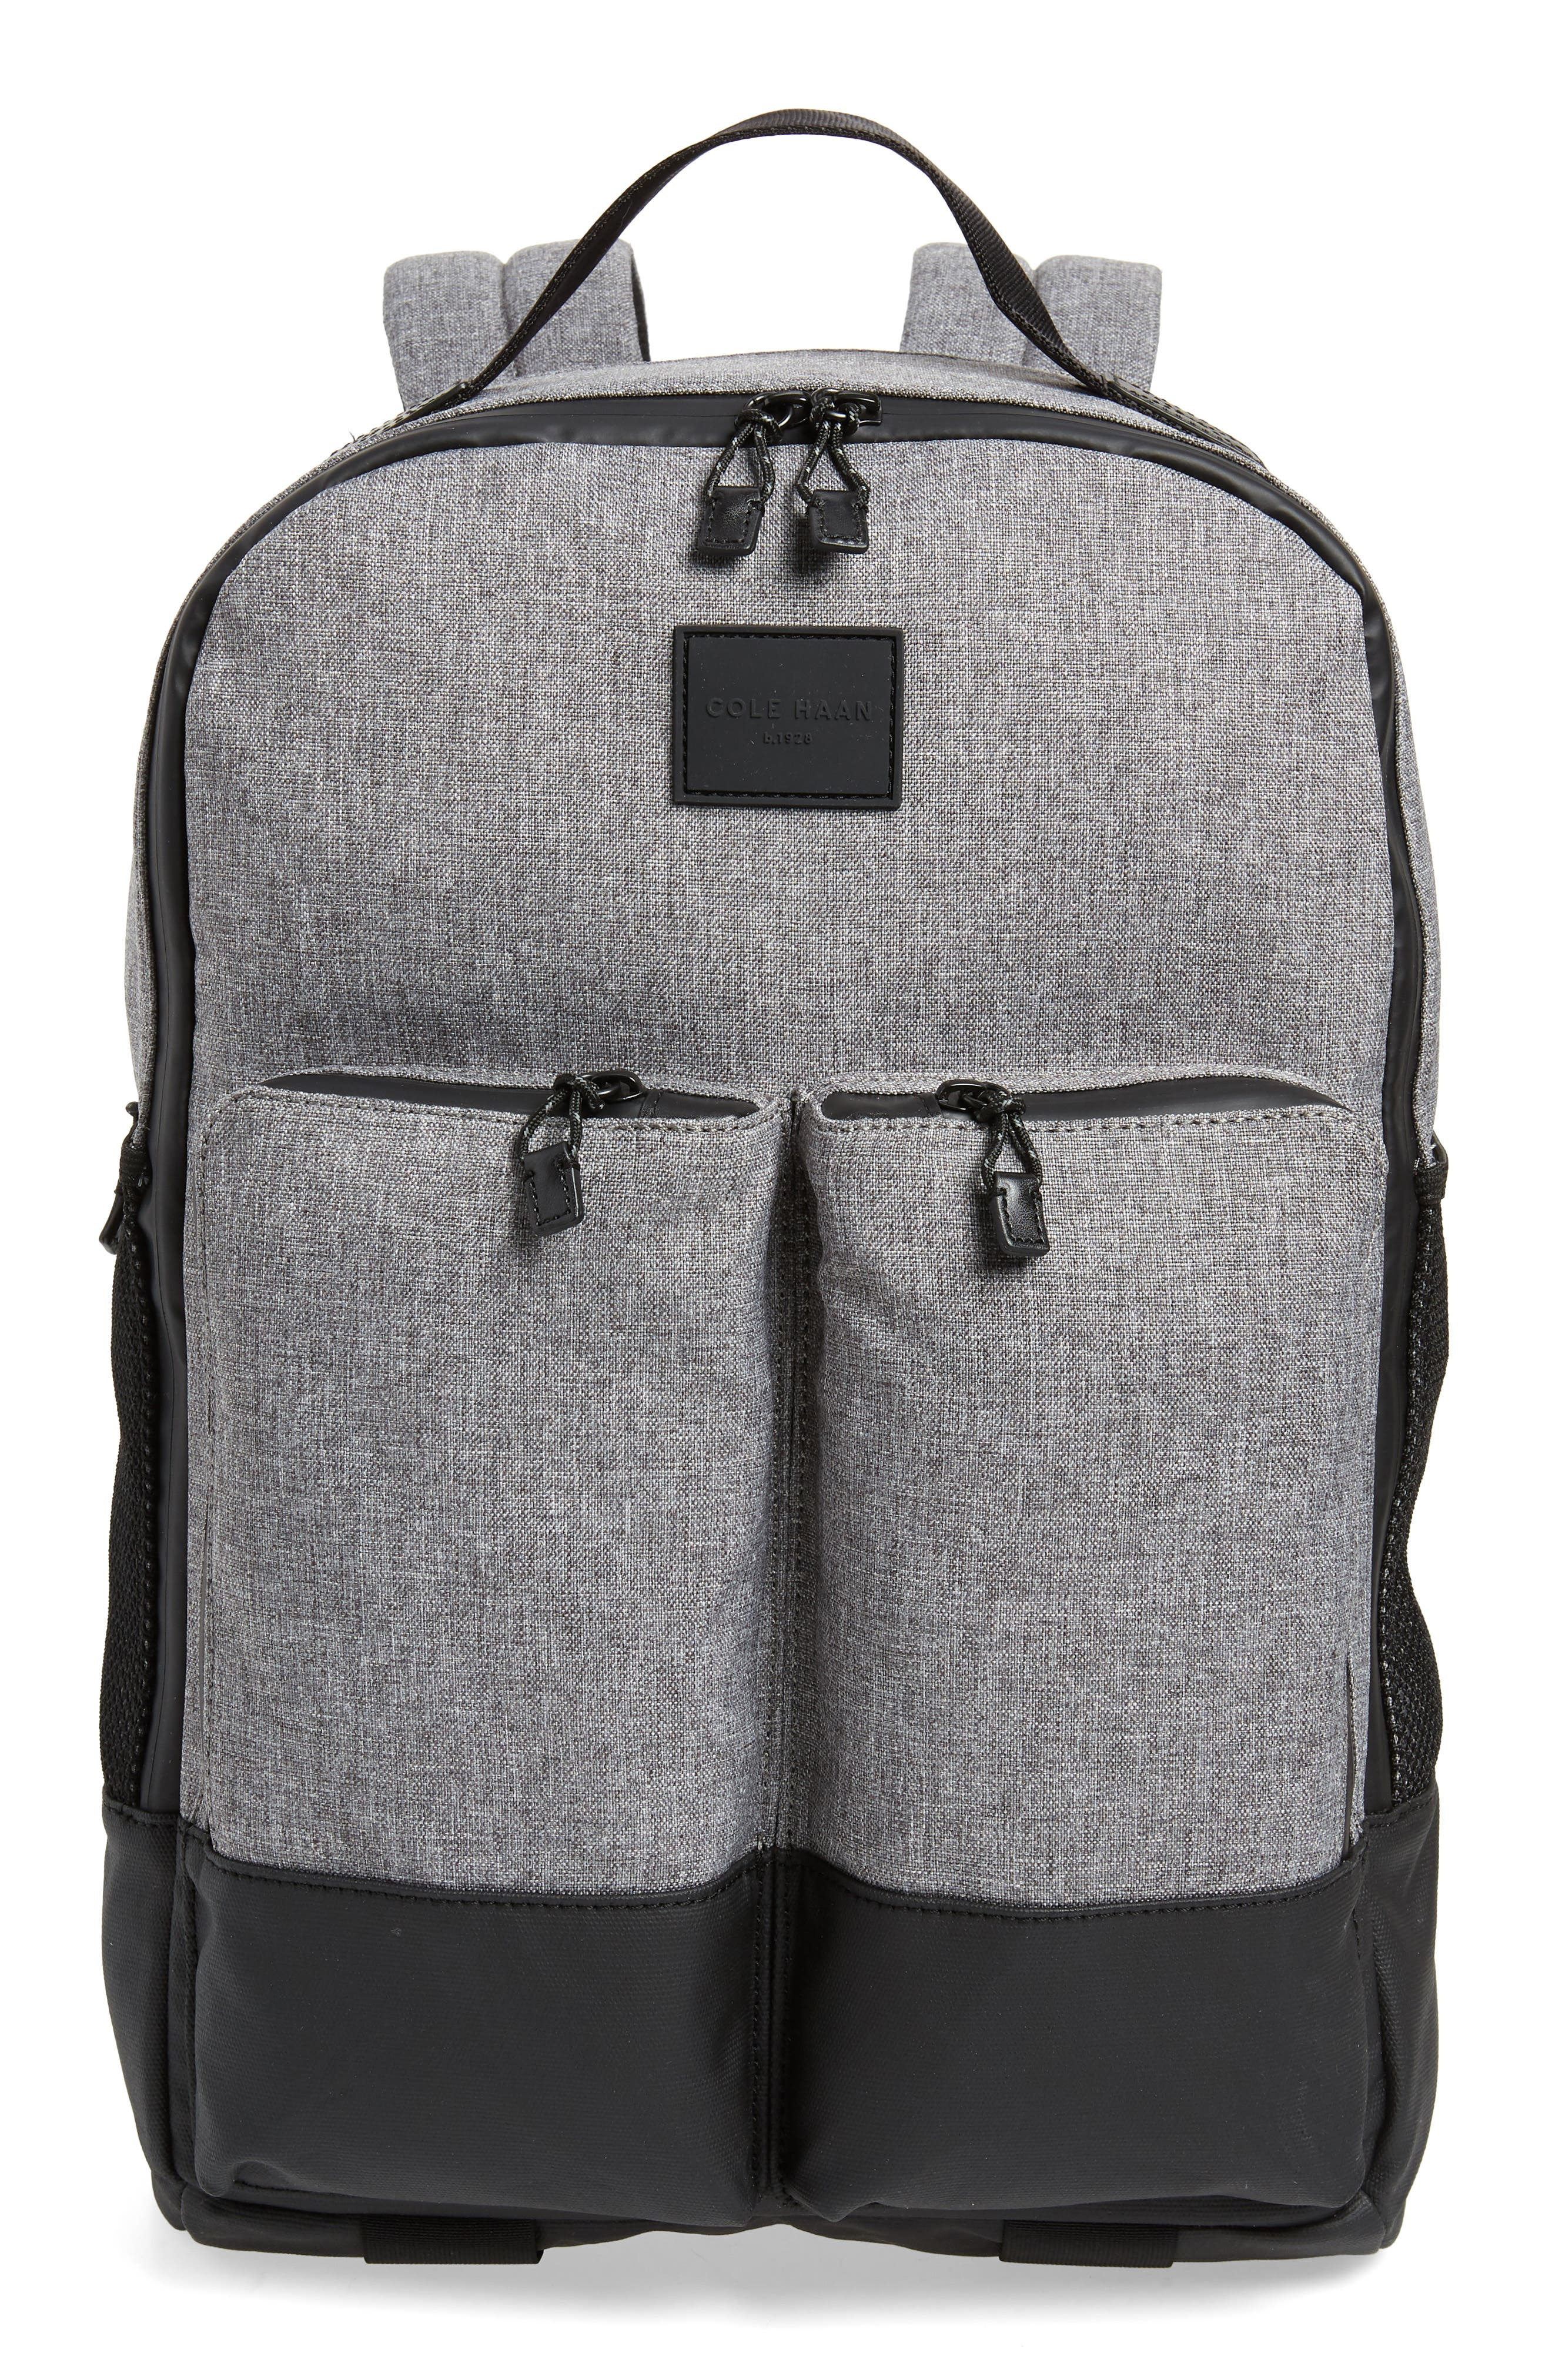 COLE HAAN, Sawyer Trail Backpack, Main thumbnail 1, color, HEATHERED GREY